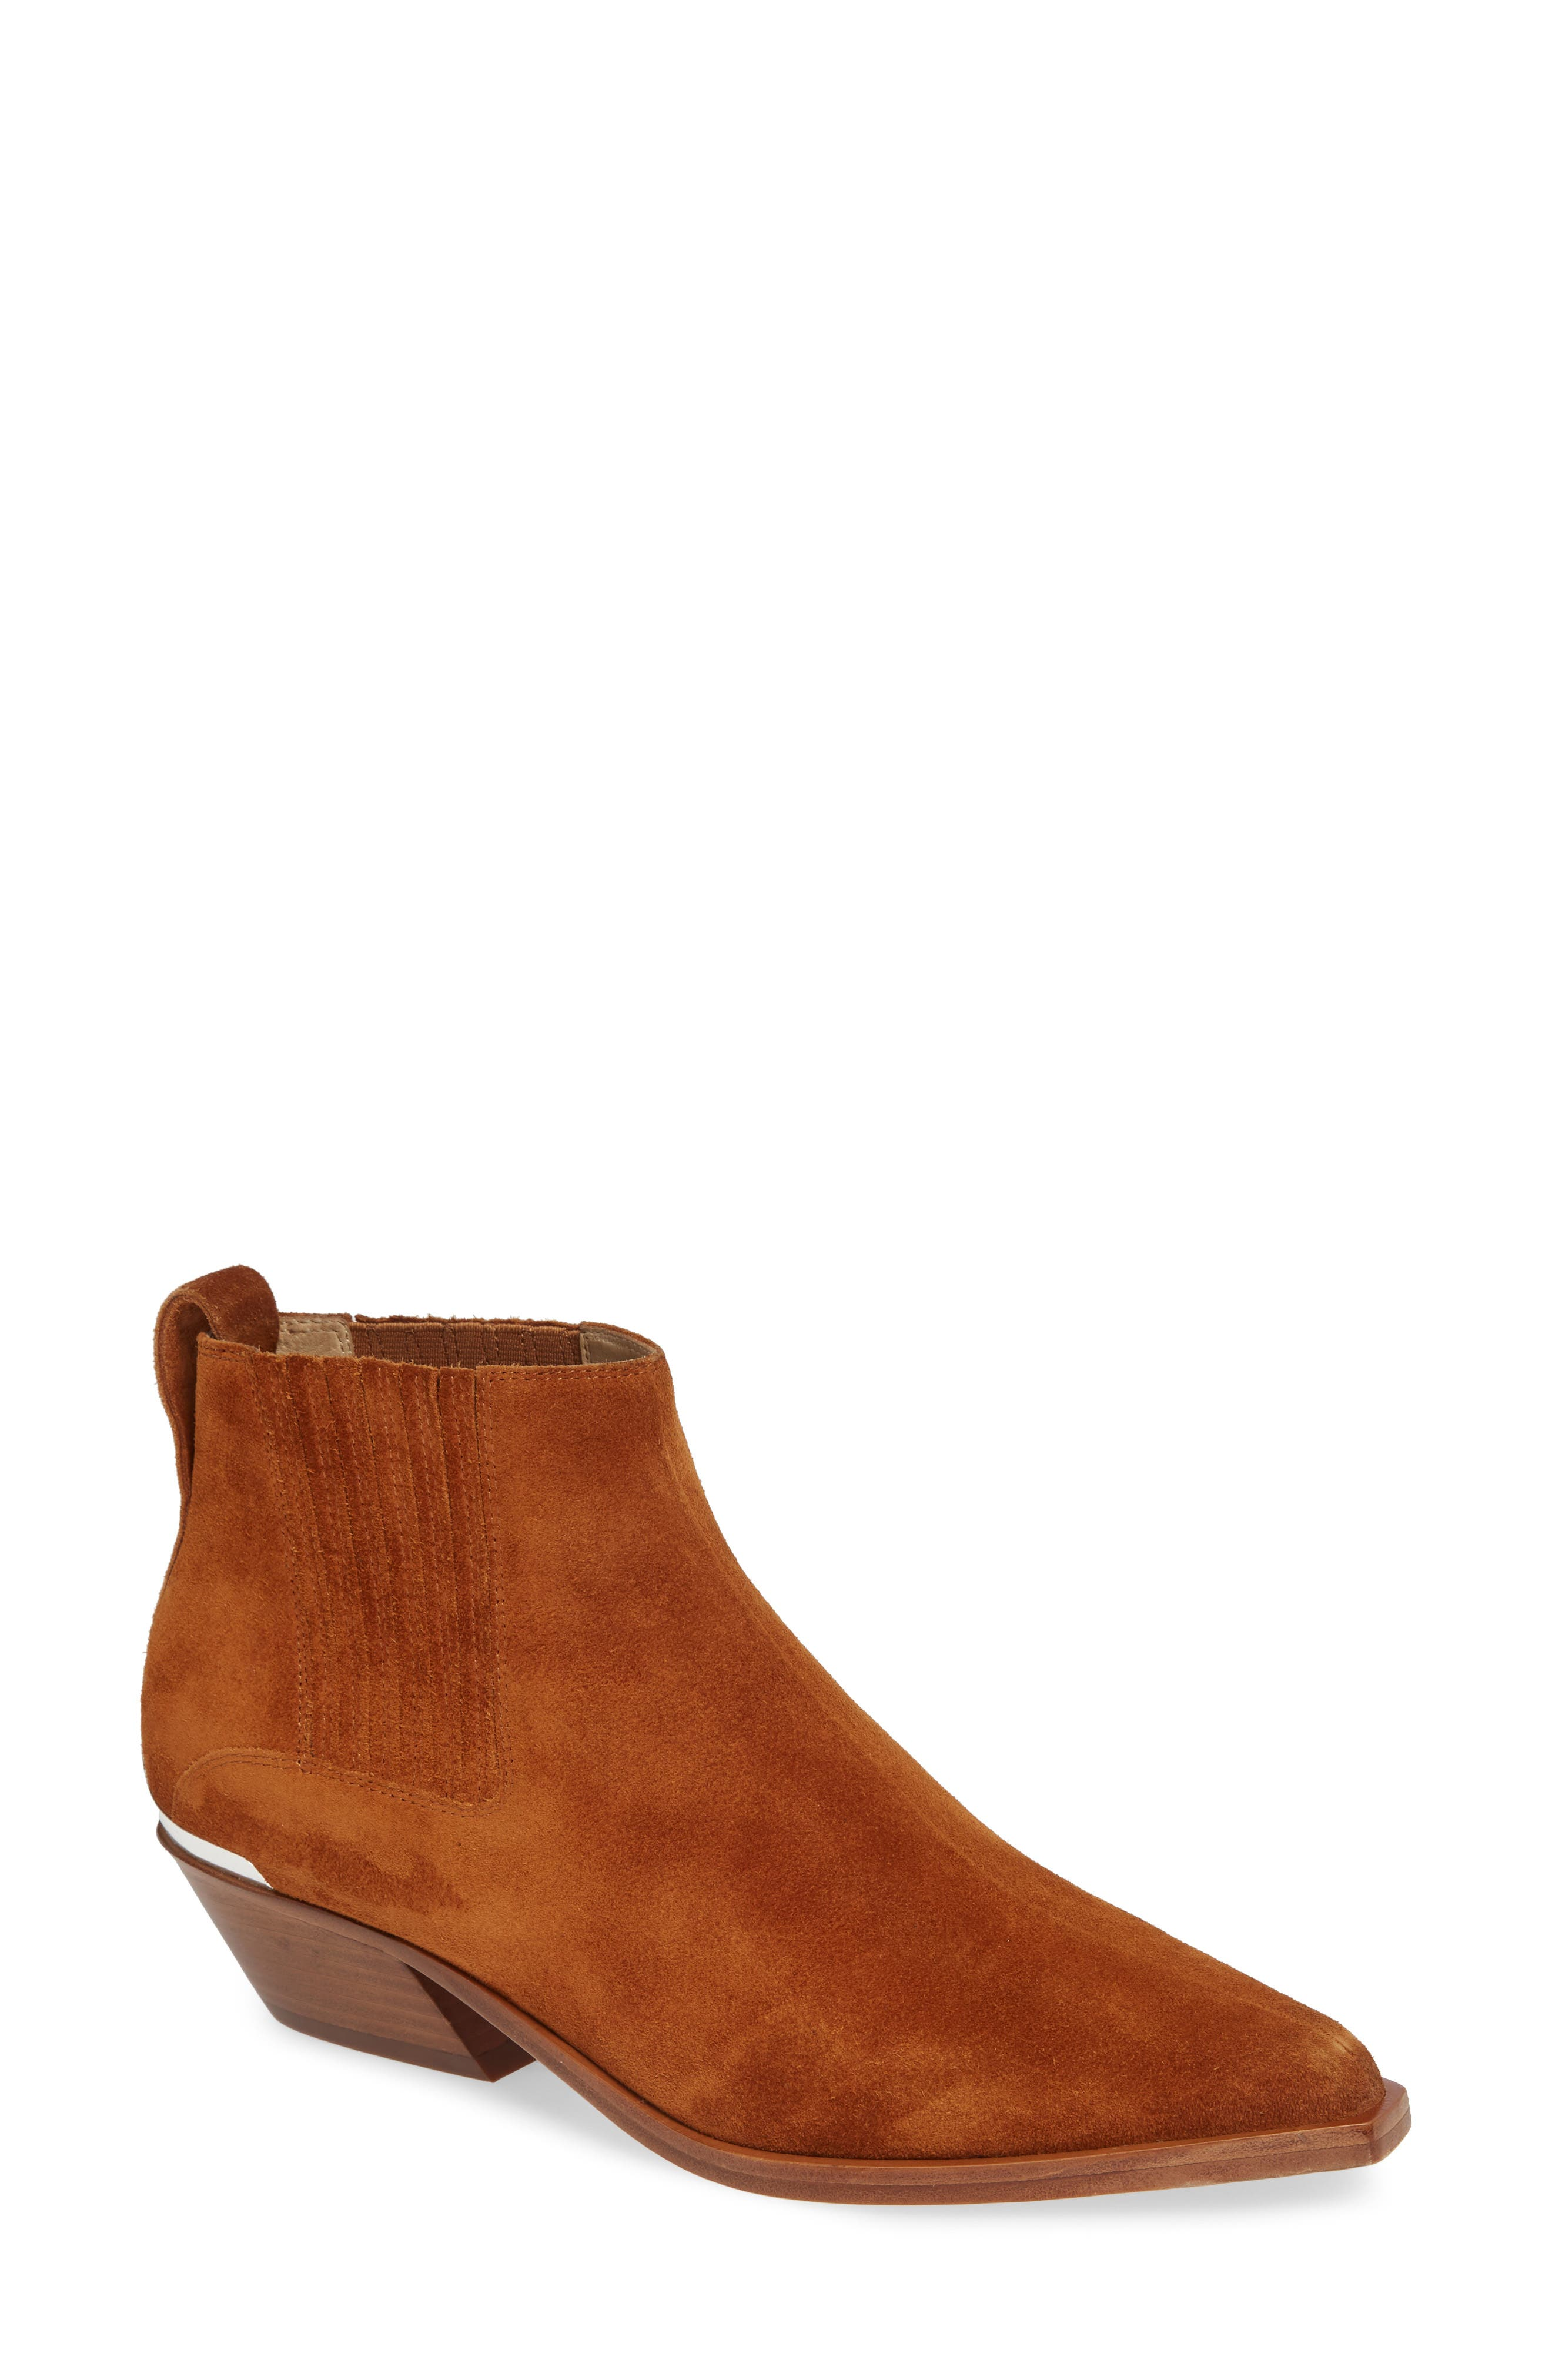 Westin Bootie,                         Main,                         color, TAN SUEDE